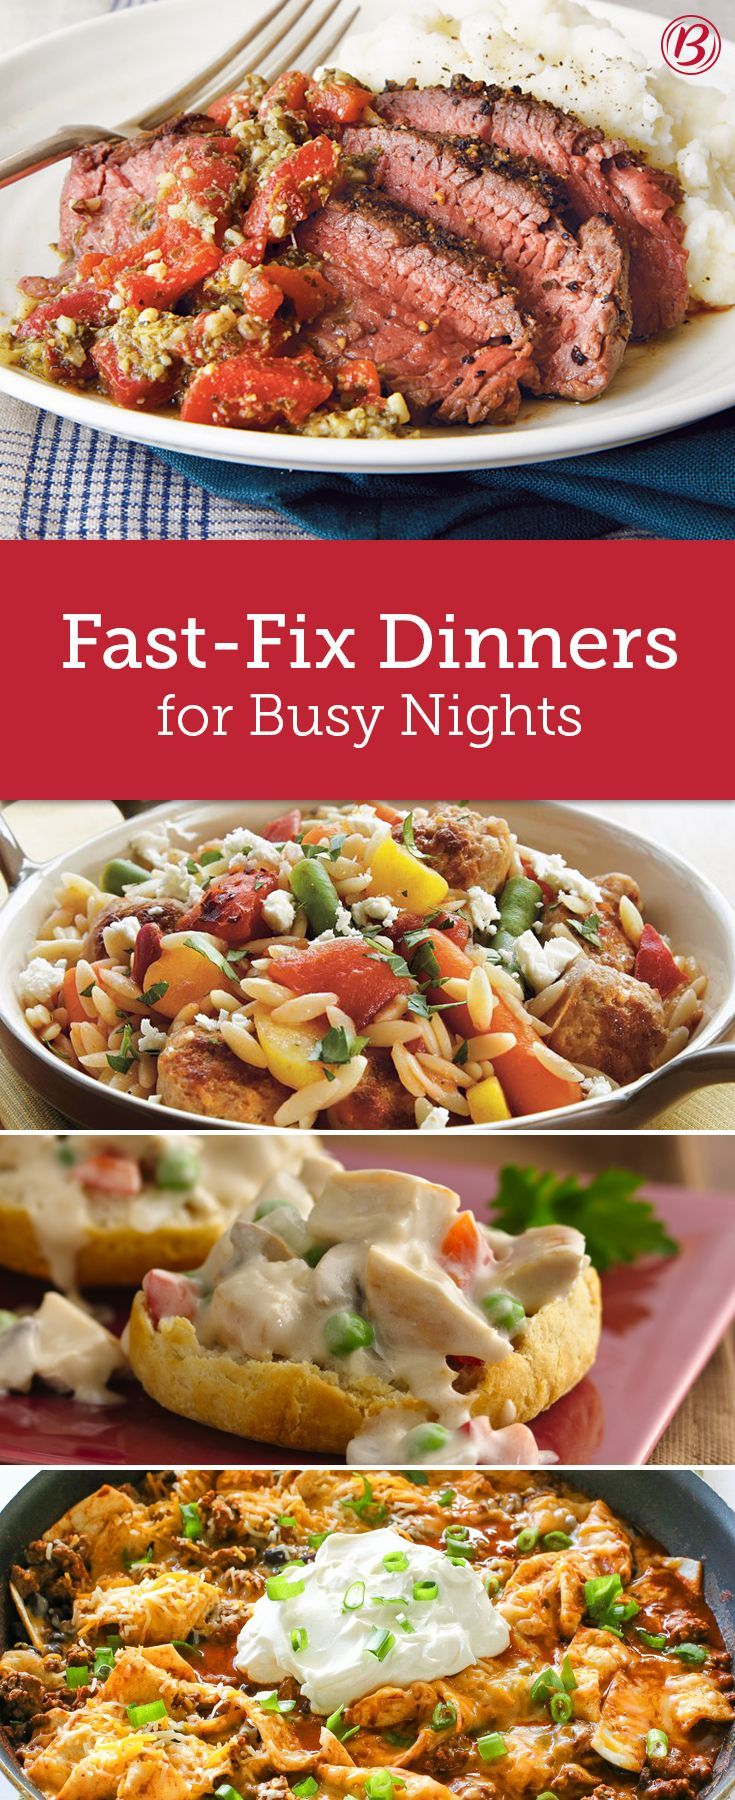 Busy schedules don't have to mean dull dinners (or takeout)! Save the money and silence the groans with one of these stellar weeknight meal ideas.